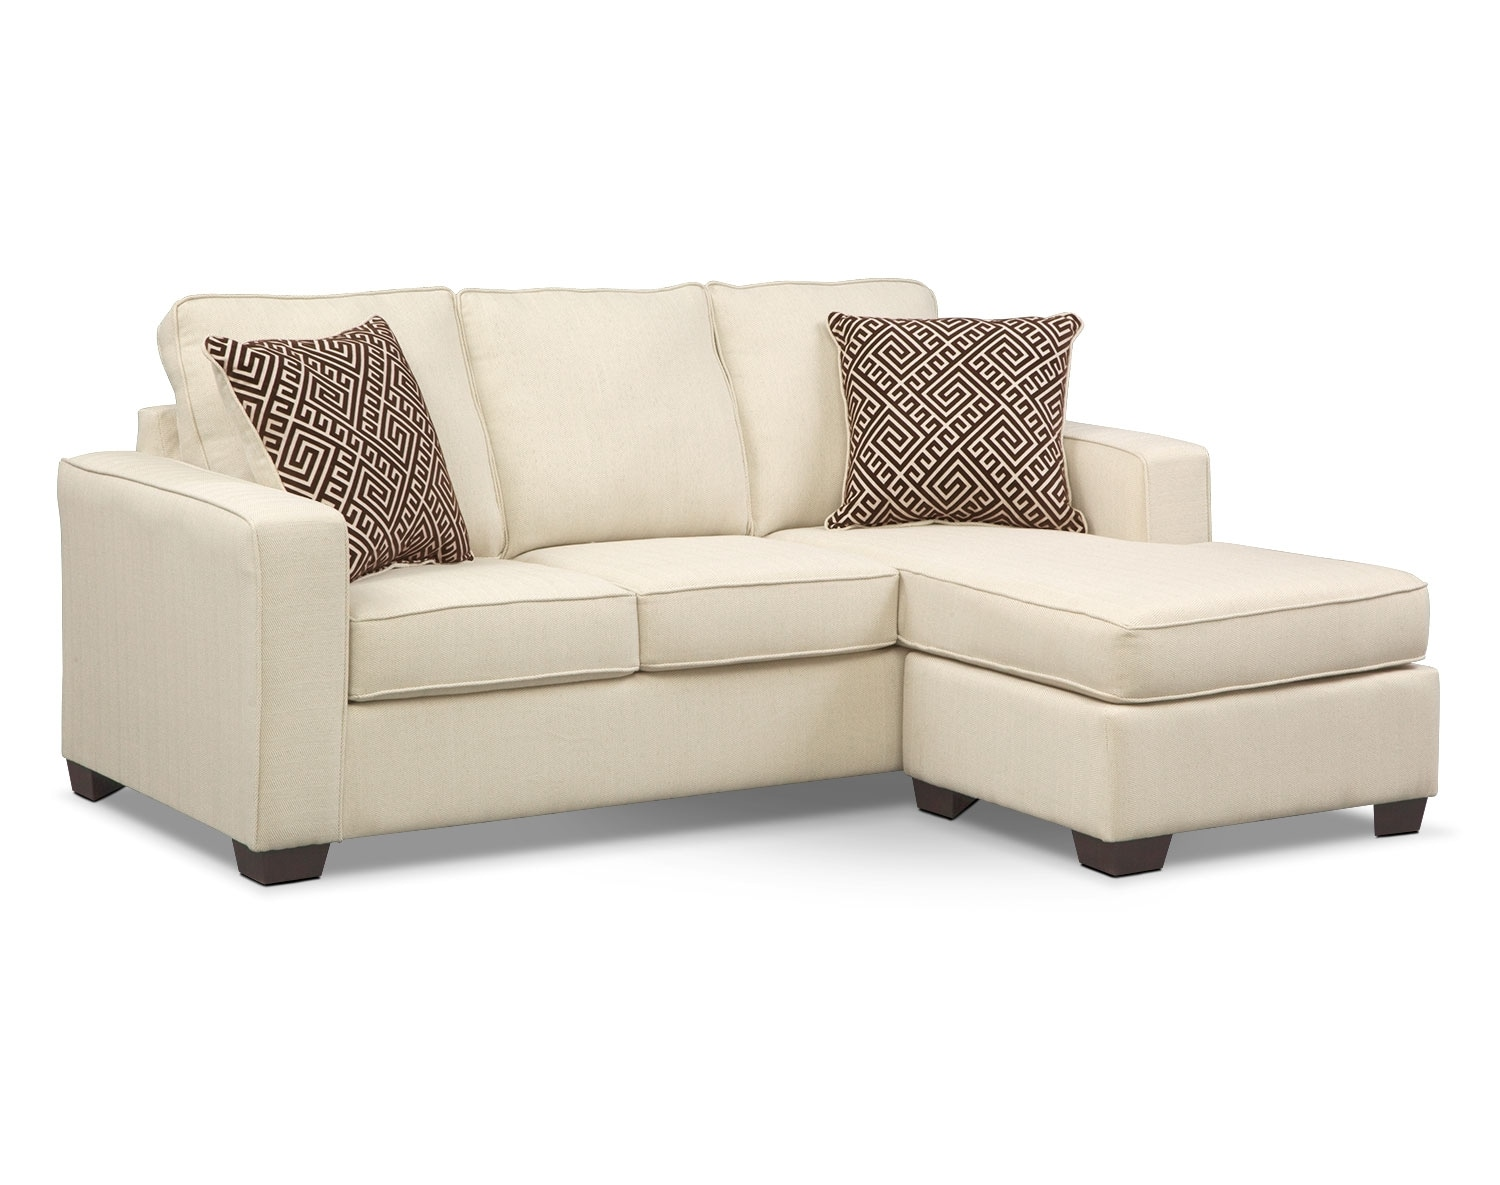 [The Sterling Beige Sleeper Sofa Collection]